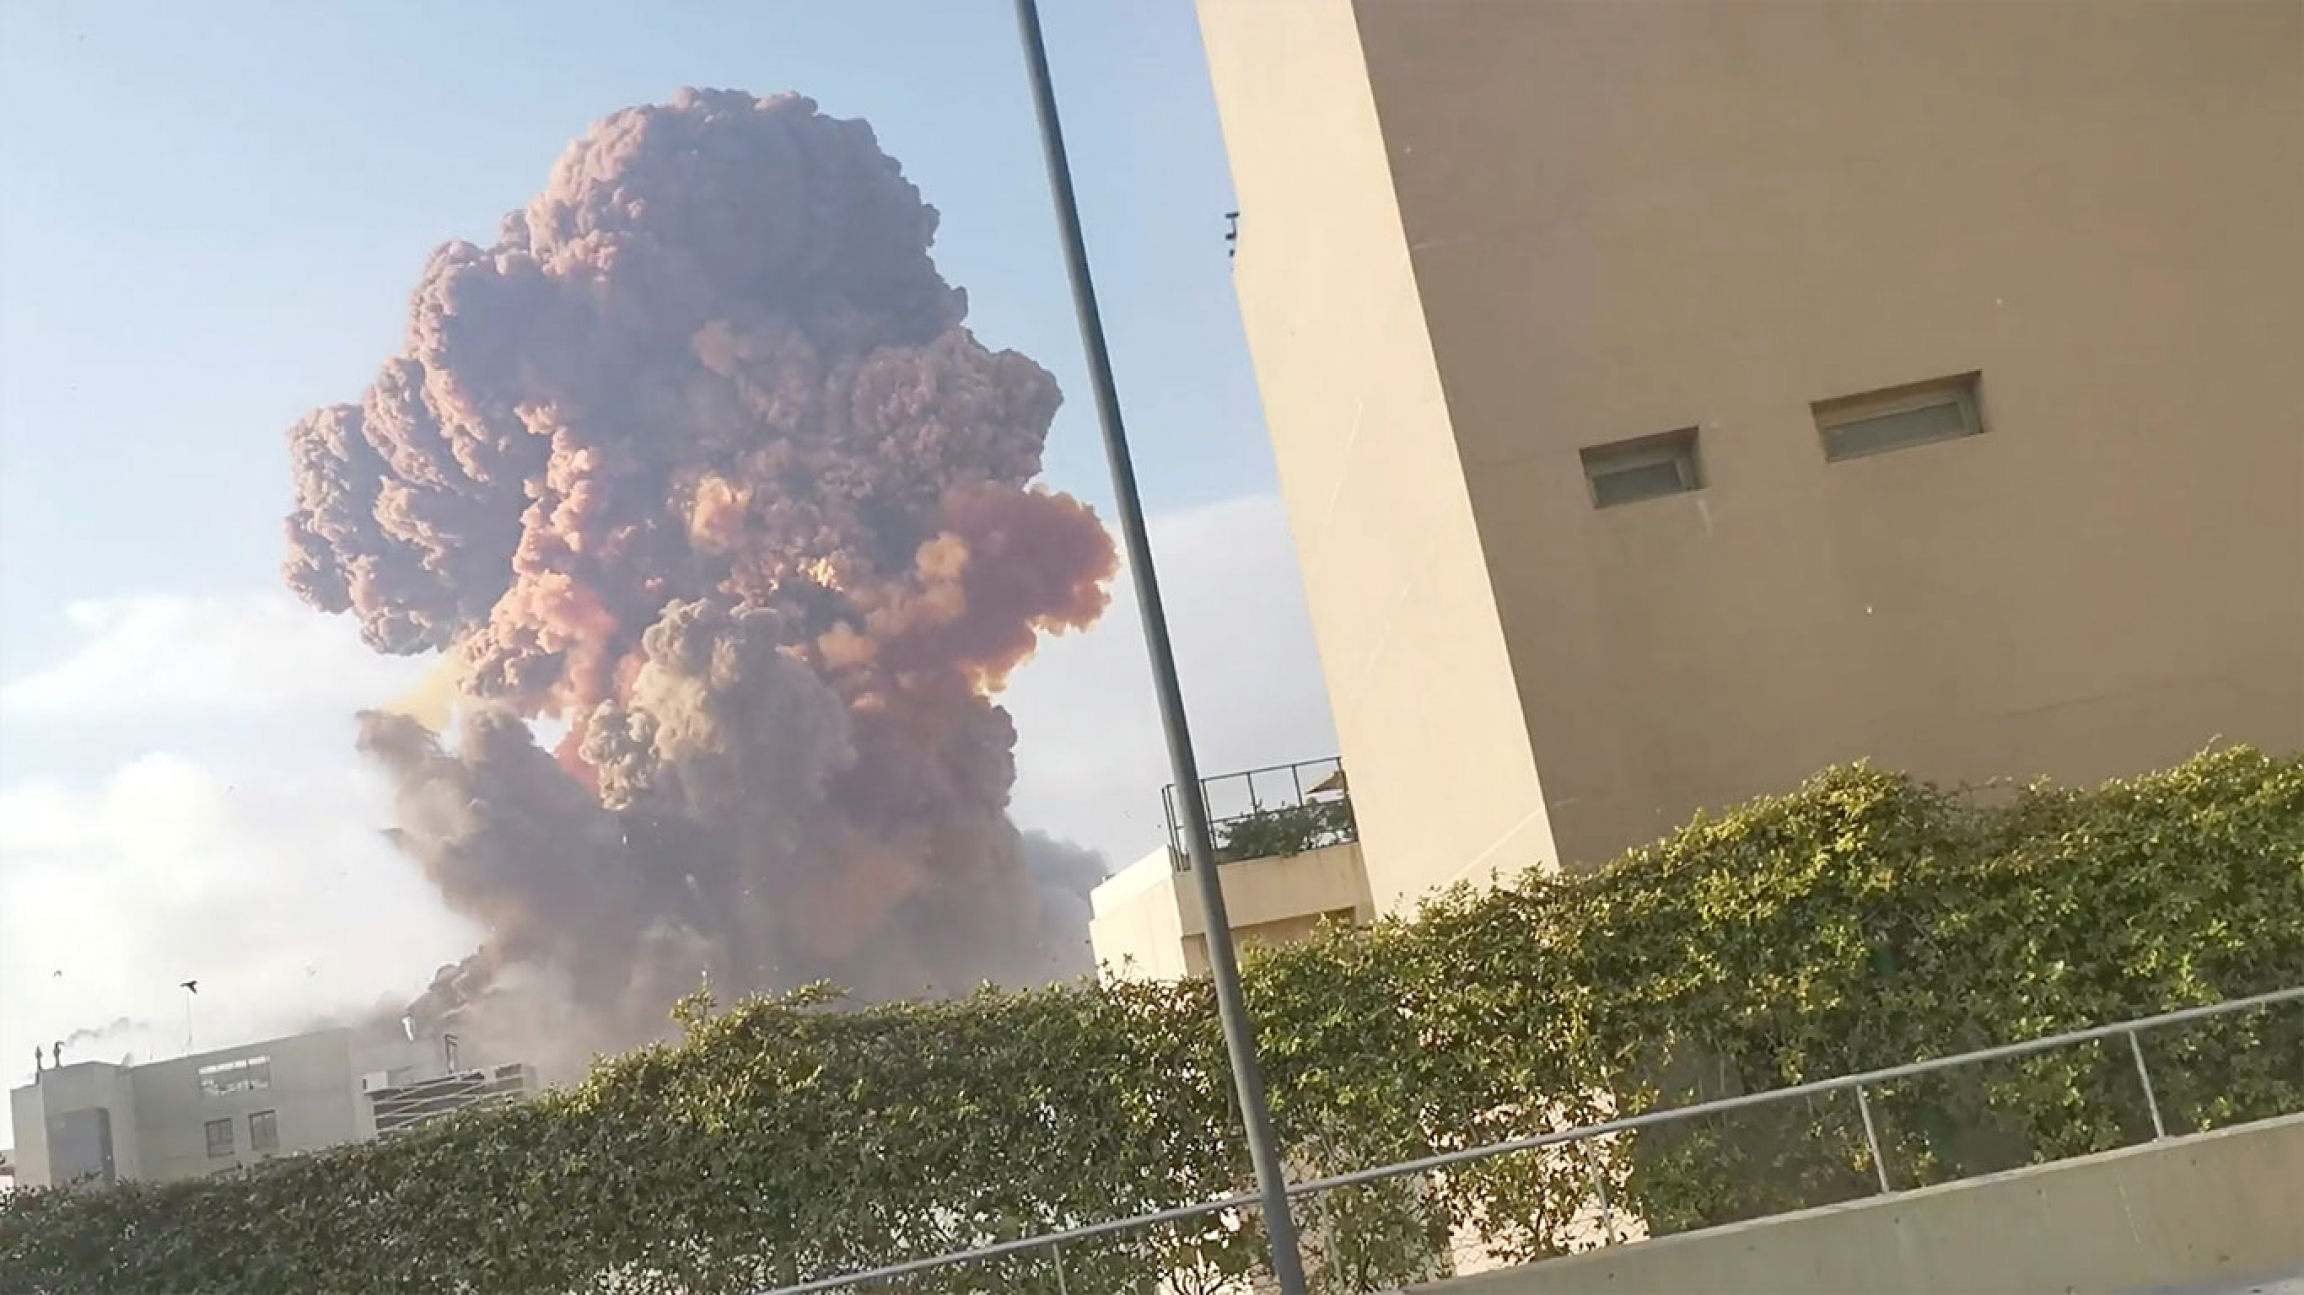 The dark plume of an explosion rises in the distance with a khaki-colored building in the nearground.